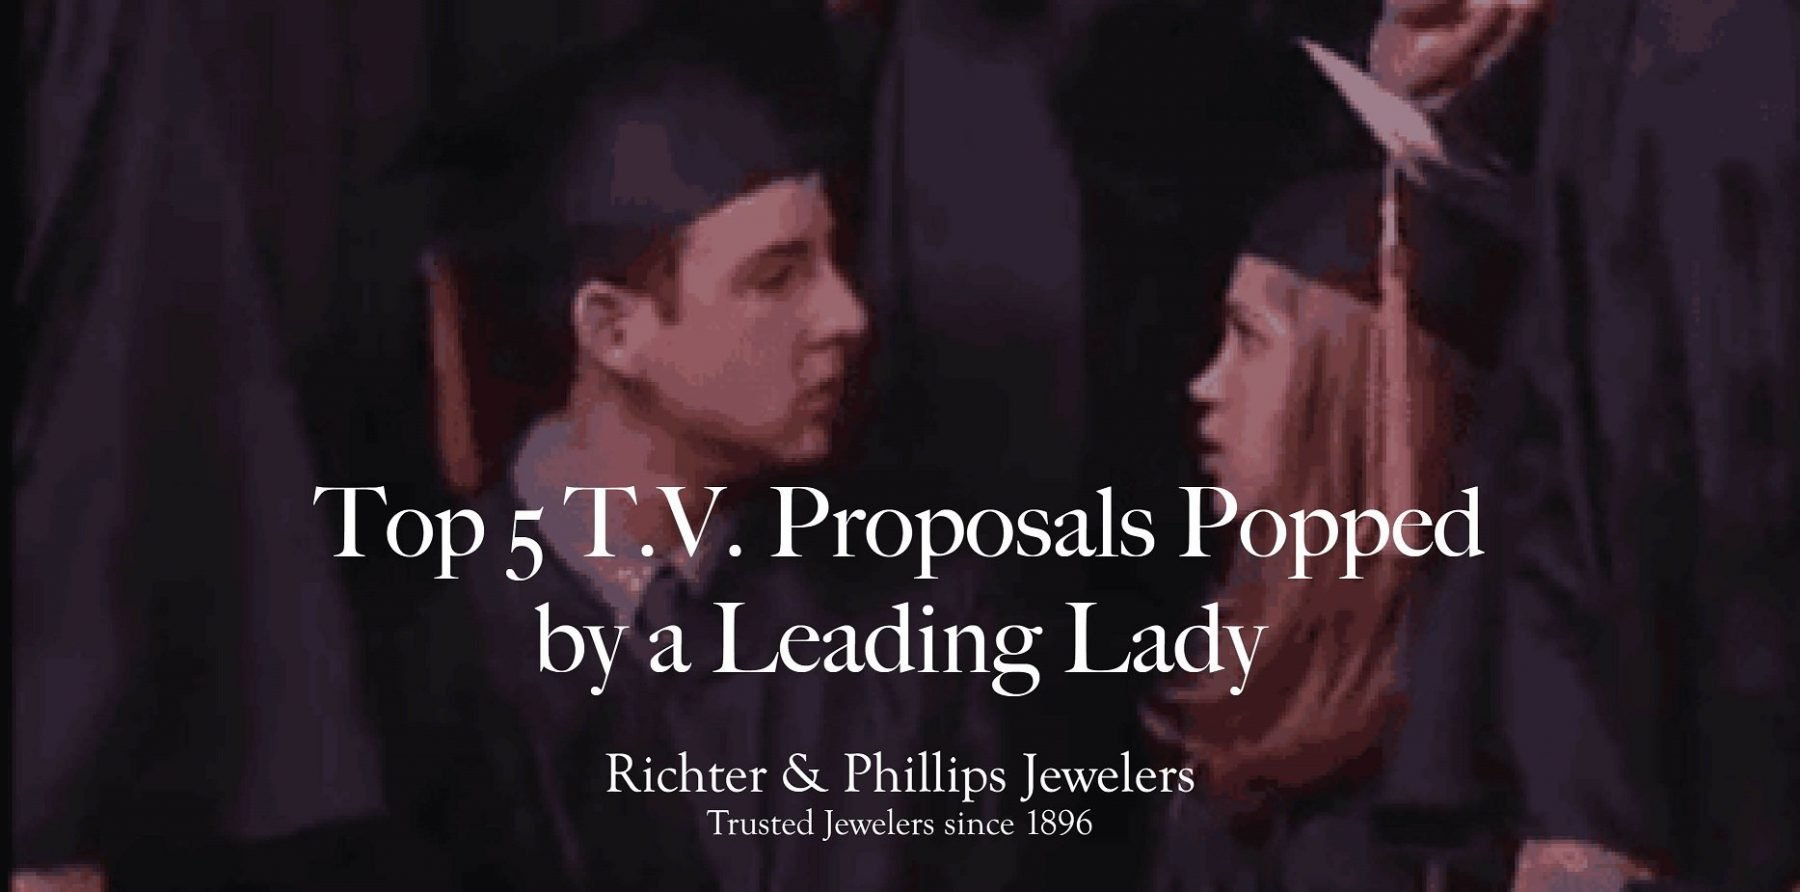 Top 5 Television Proposals Popped by a Leading Lady